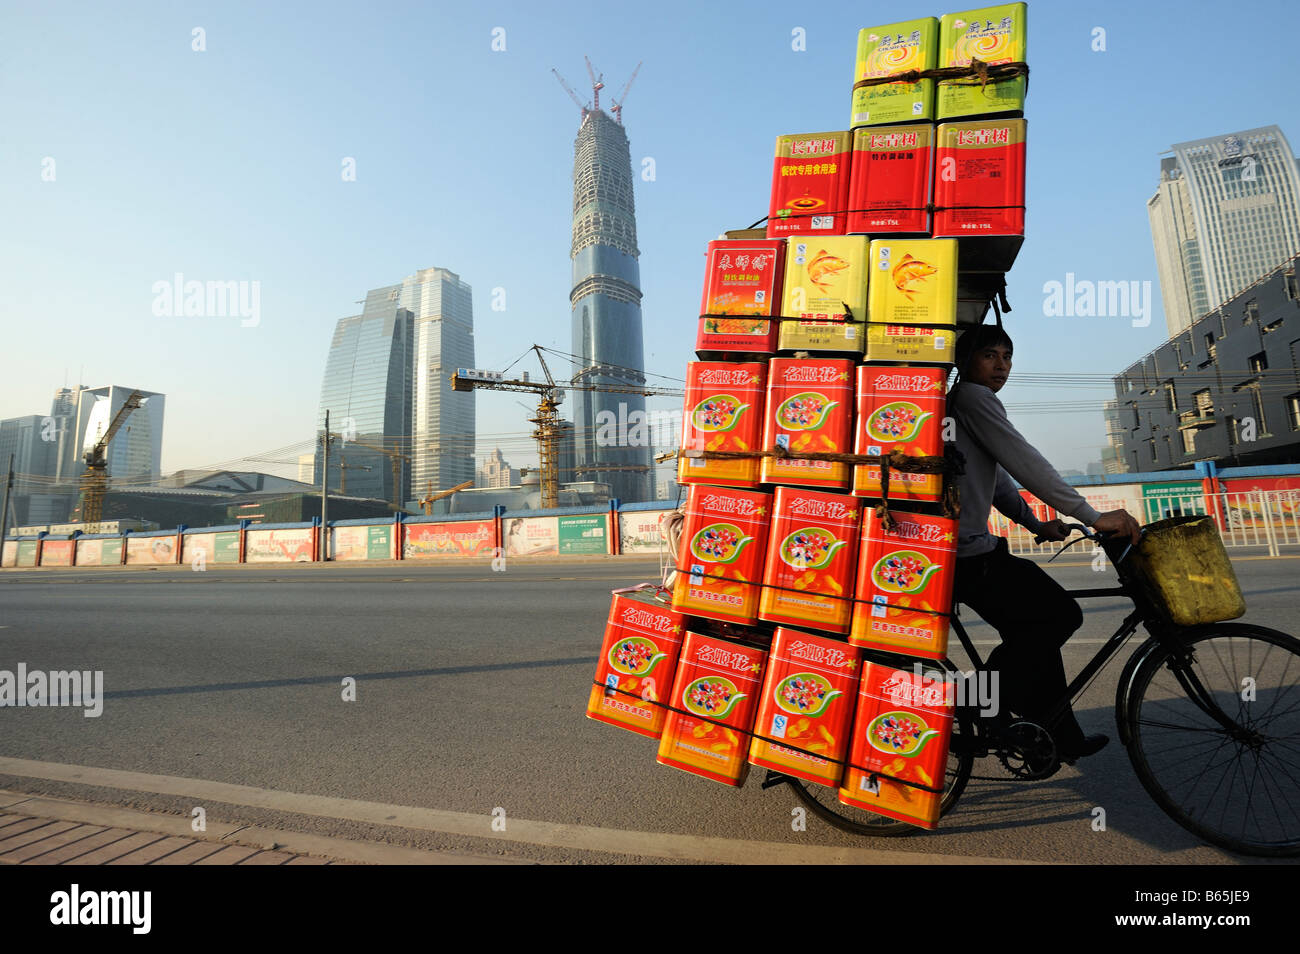 A man rides a bicycle with cooking oil past a construction site in Guangzhou, Guangdong, China. 26-Dec-2008 - Stock Image